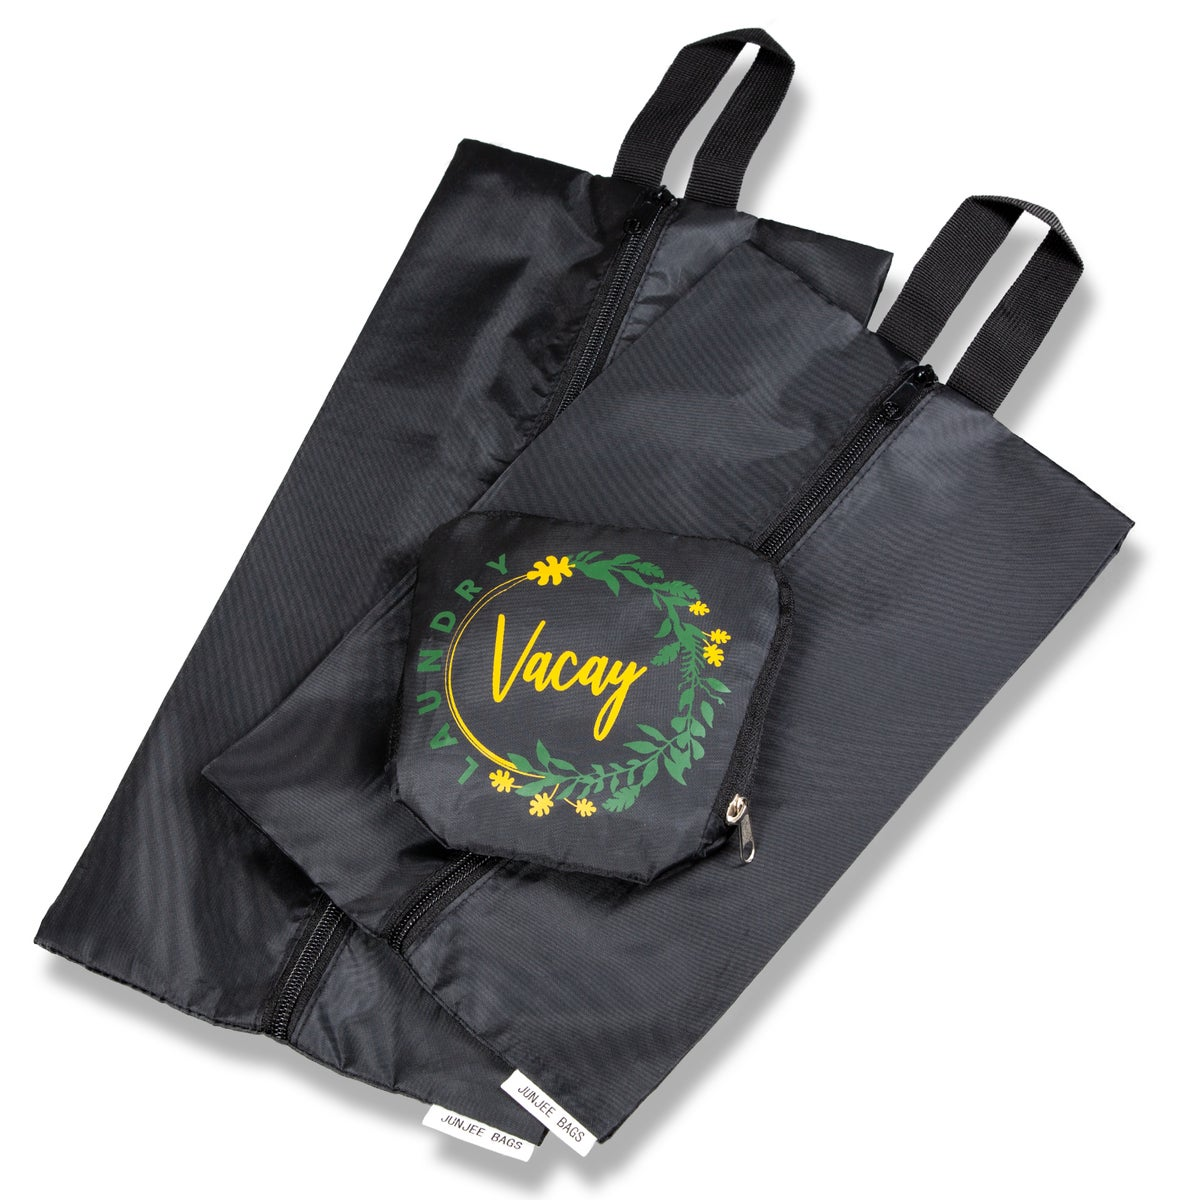 Travel Laundry Bag and Bonus Set of Two Shoe Bag/Pouch